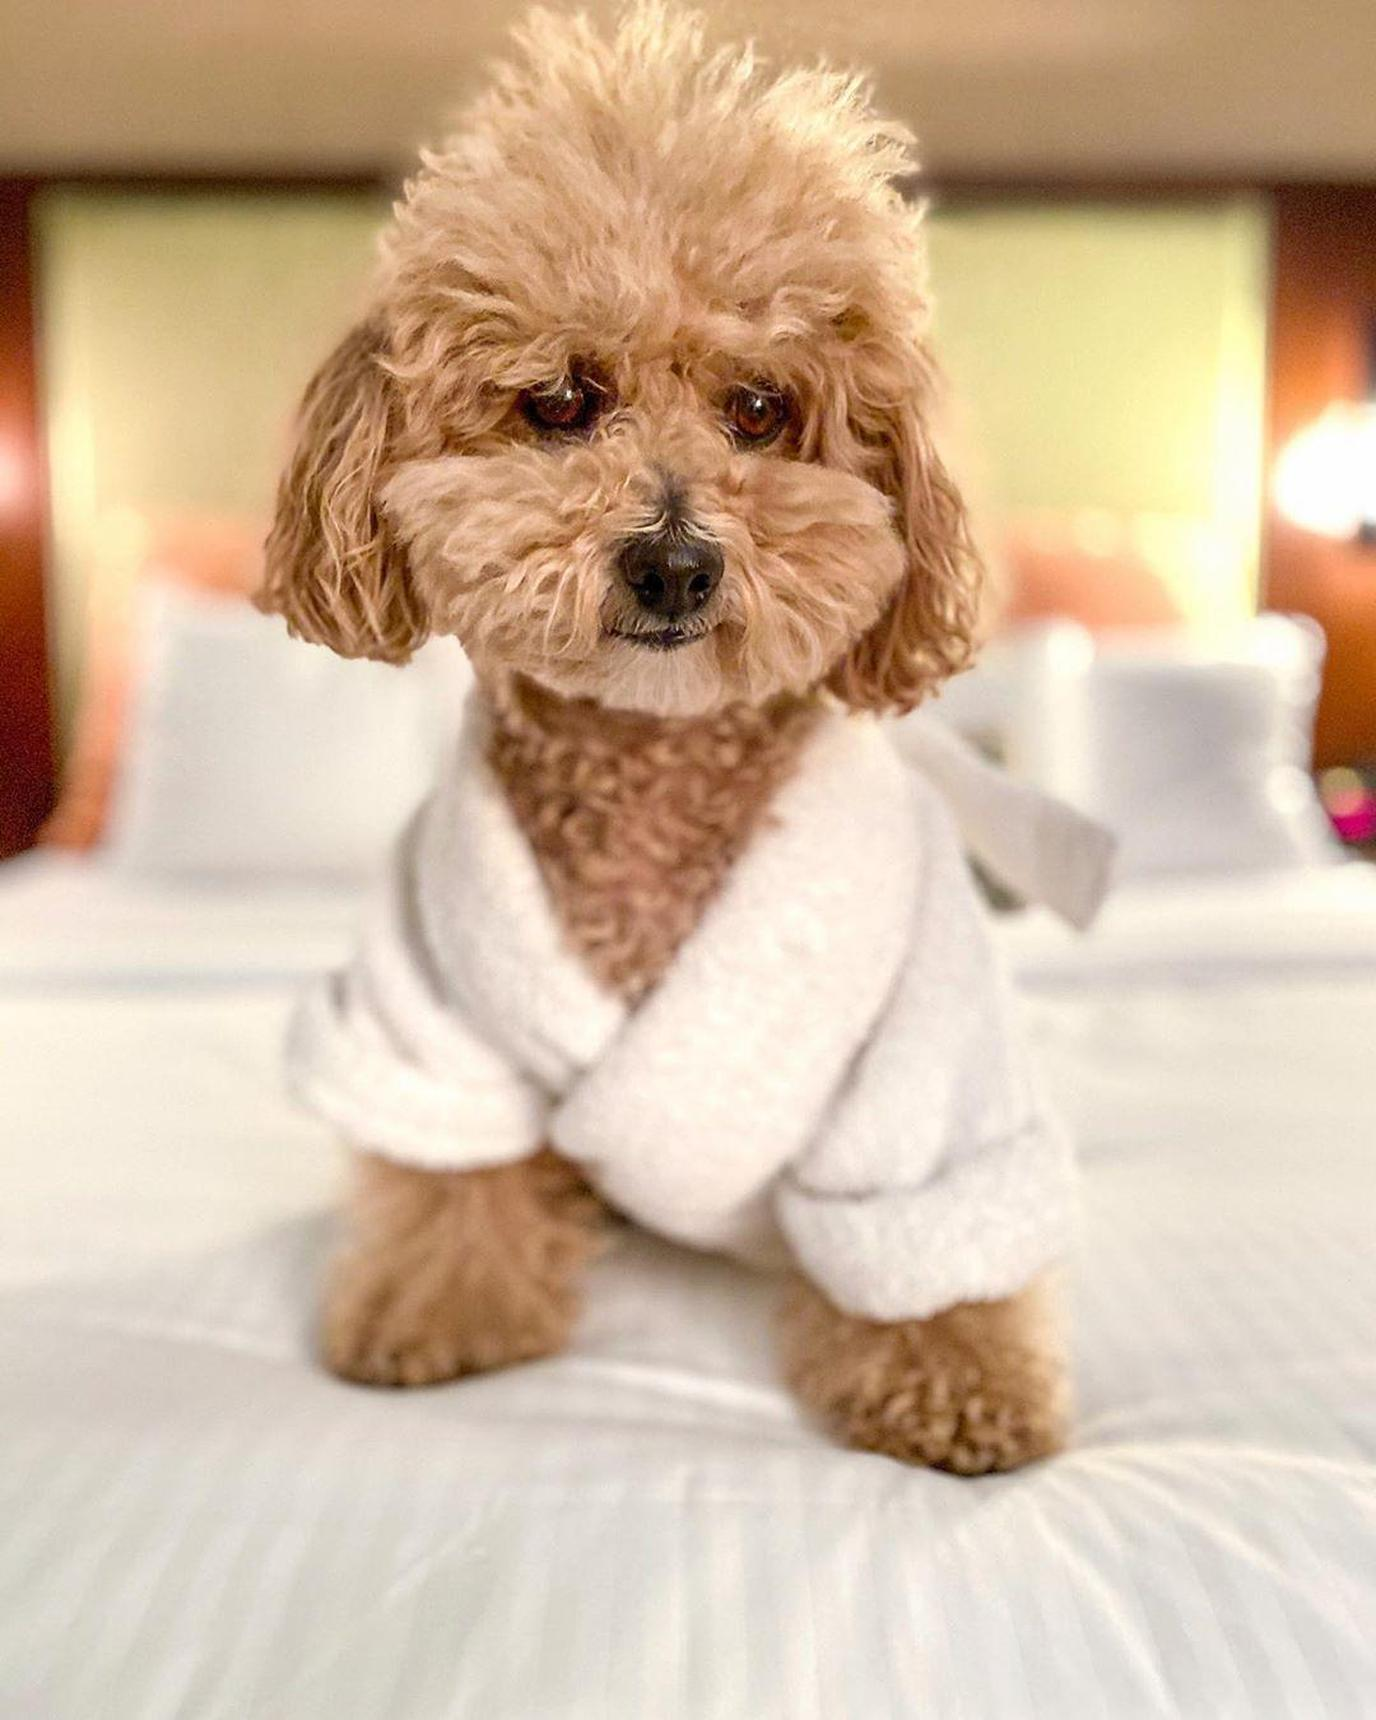 A pet-friendly hotel for the holidays is much better than staying with relatives!